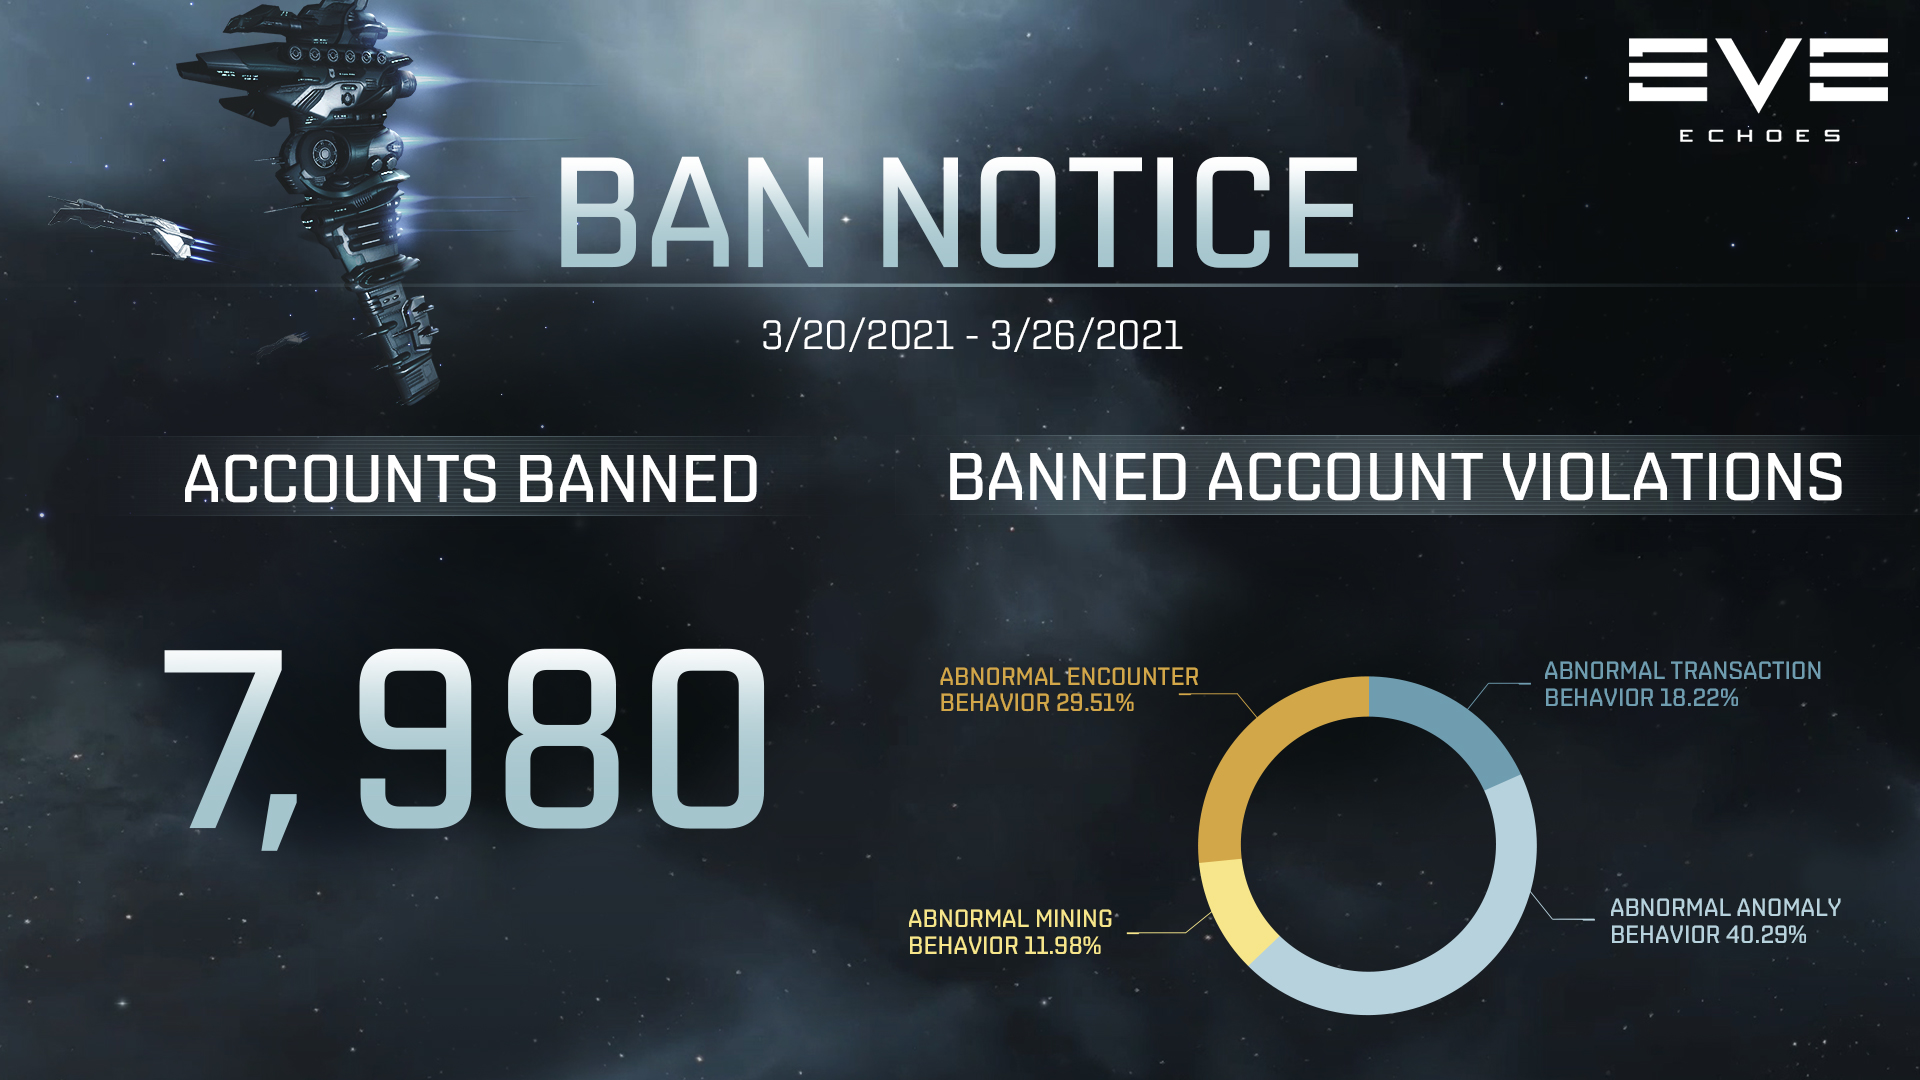 Ban Notice for 03/20-03/26